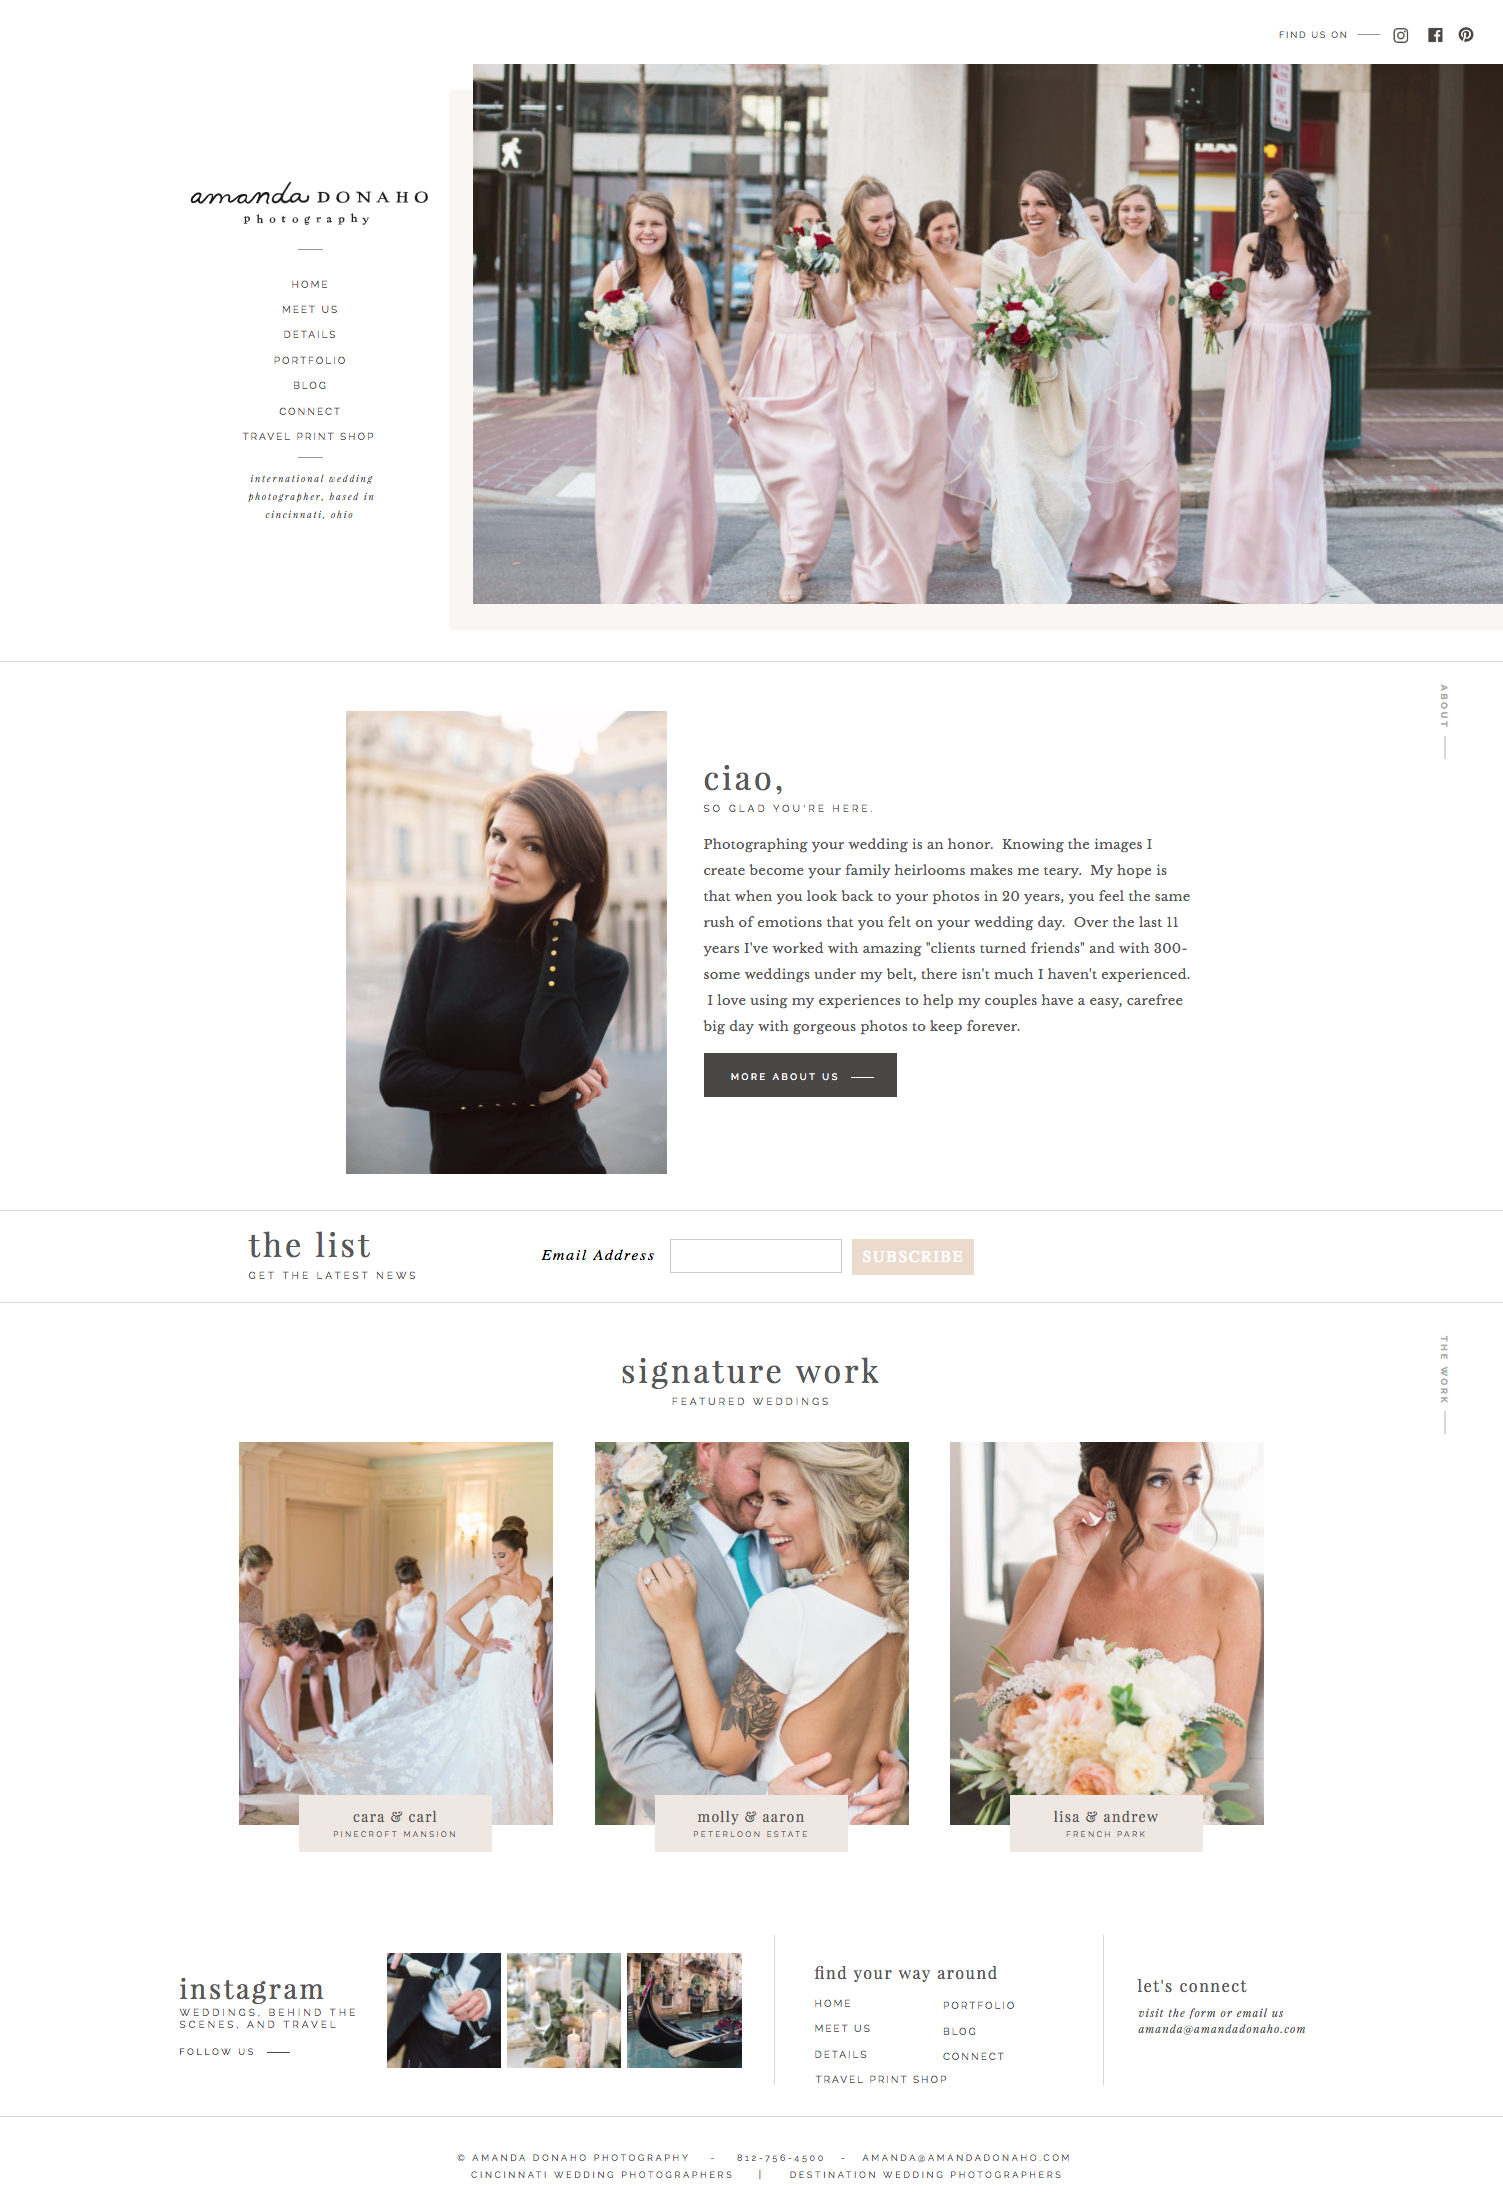 Showit website templates for photographers & creatives | Davey & Krista